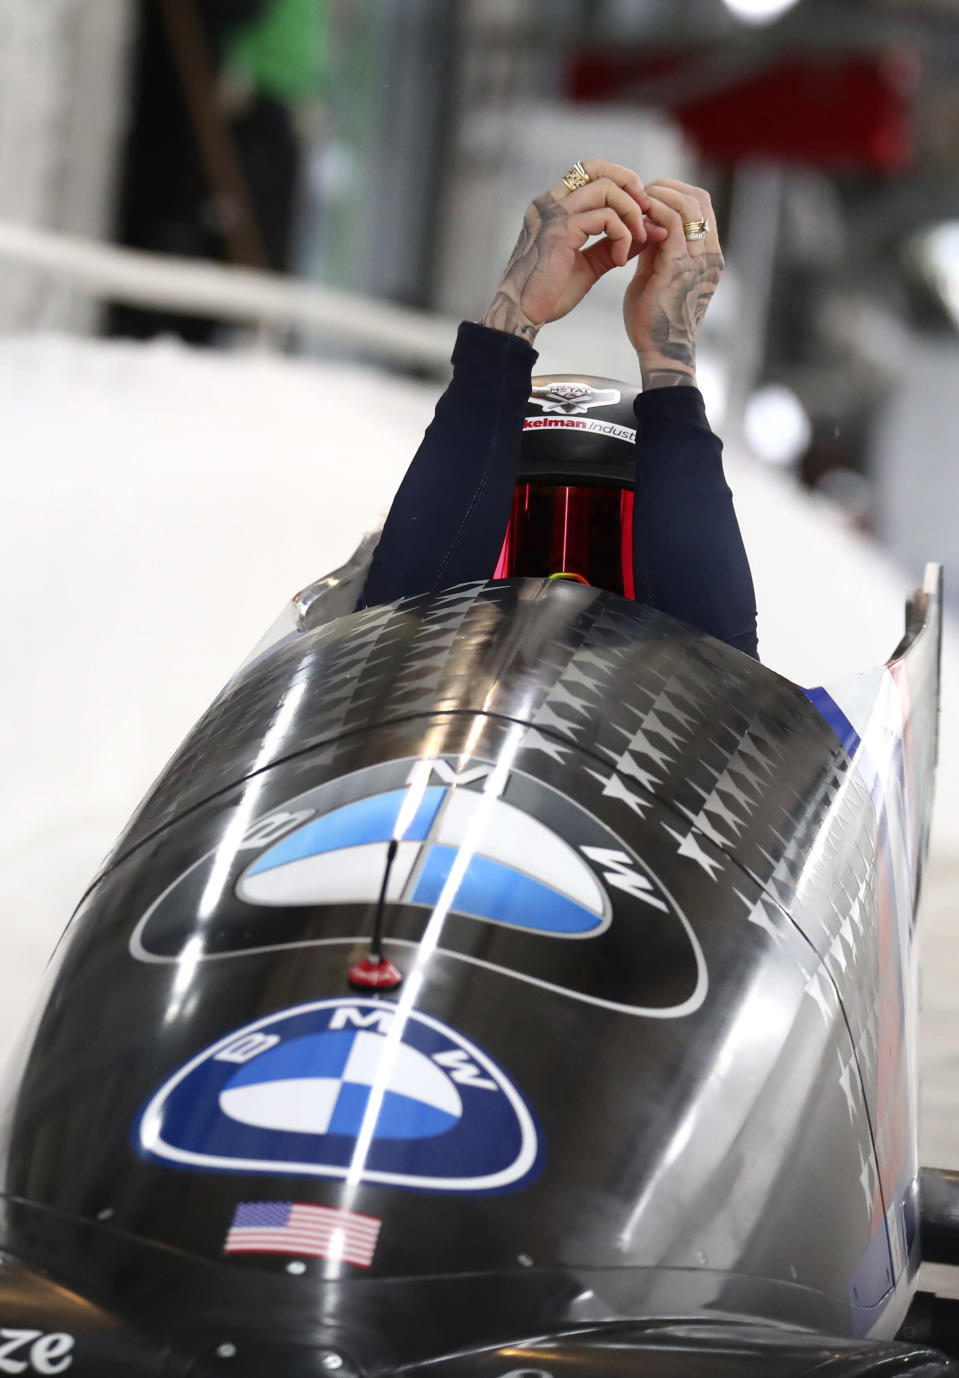 United State's bobsleigh pilot Kaillie Humphries at the start of the women's monobob race at the Bobsleigh and Skeleton World Championships in Altenberg, Germany, Saturday, Feb.13, 2021. (AP Photo/Matthias Schrader)